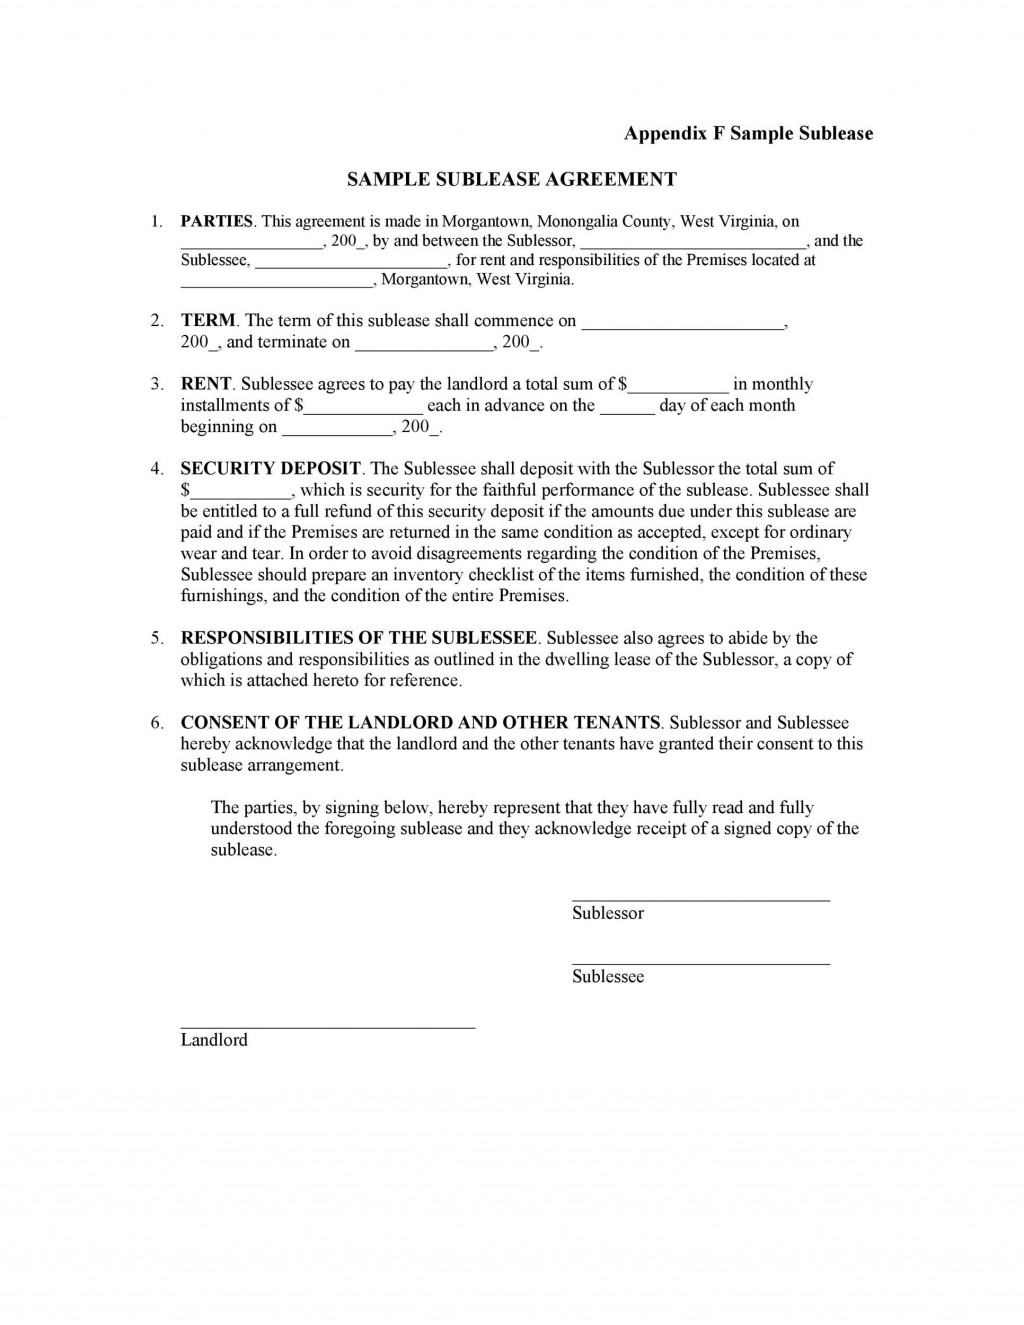 008 Impressive Free Sublease Agreement Template Pdf Image  Room Rental Car Form Residential LeaseLarge